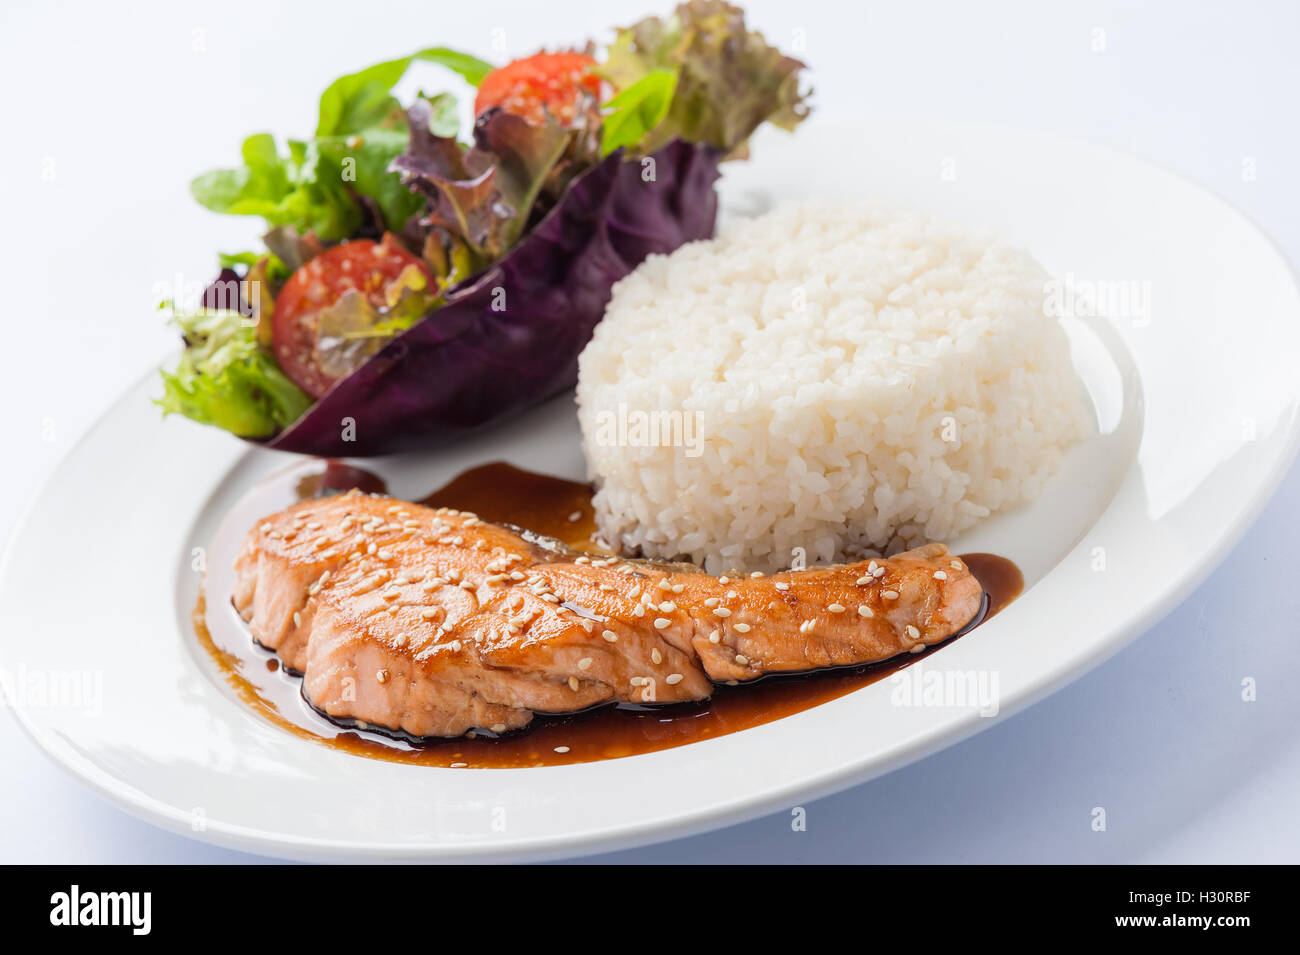 Fusion food style grilled salmon dressed with Japanese sweet sauce (Teriyaki) including Thai rice garnished with Stock Photo